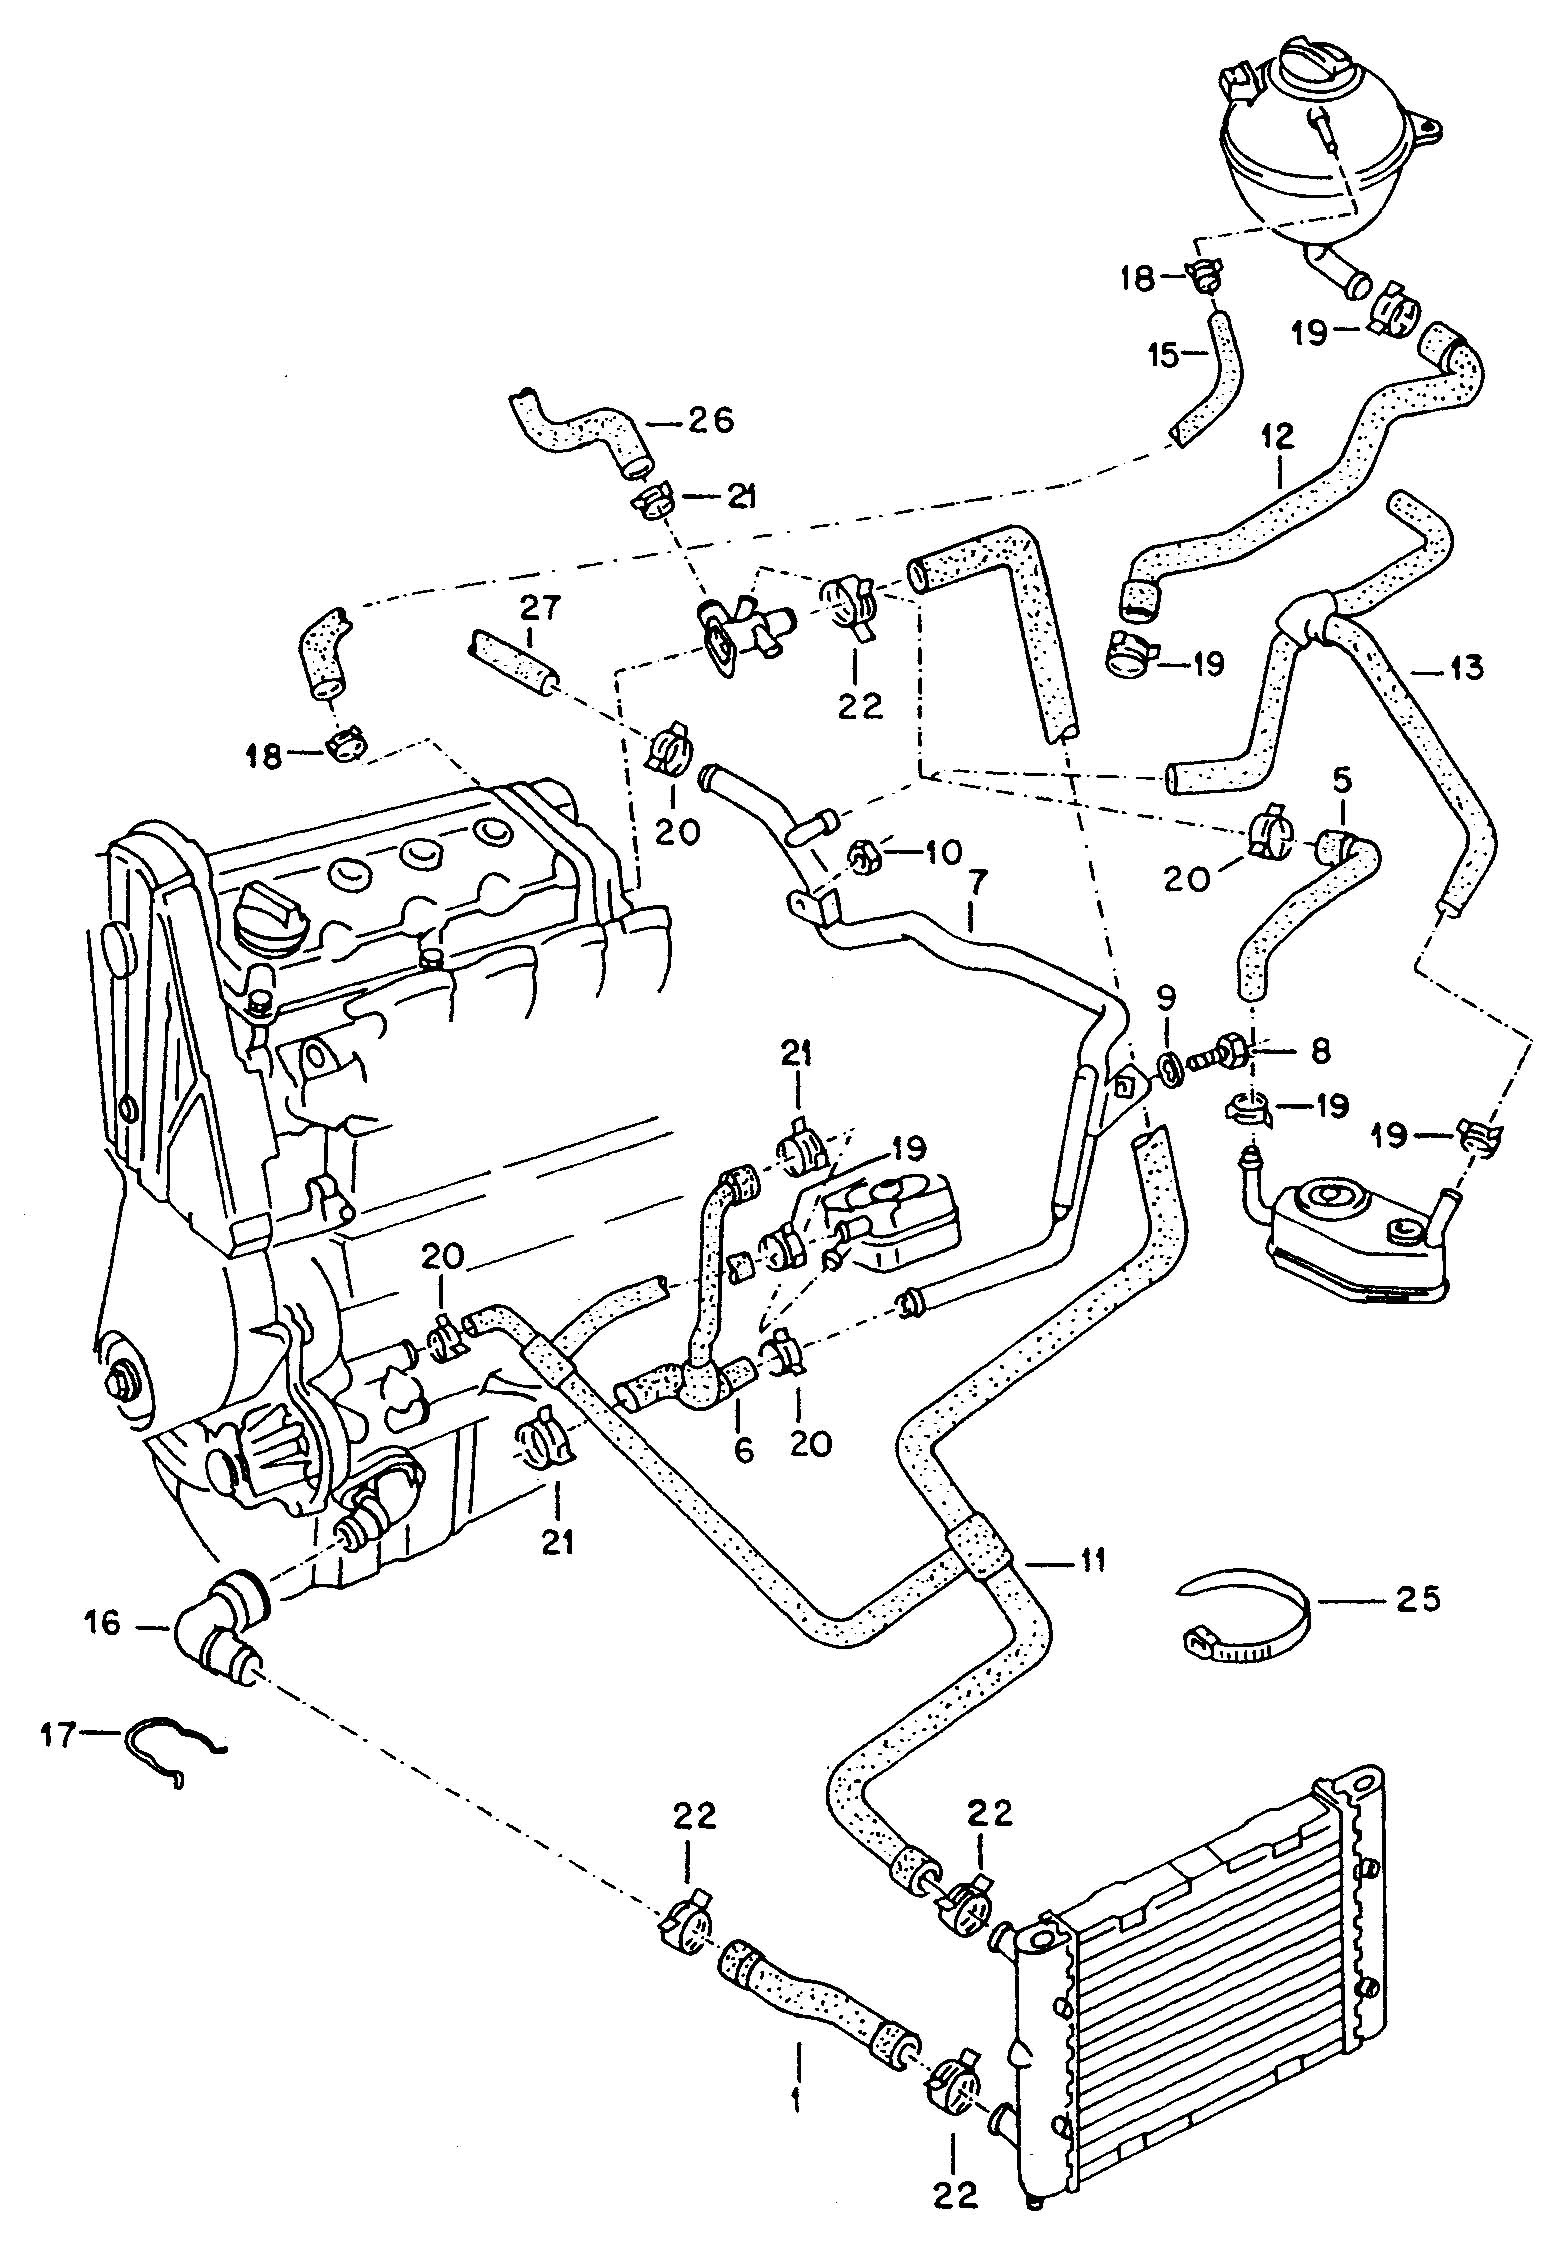 2002 Vw Jettum Engine Diagram